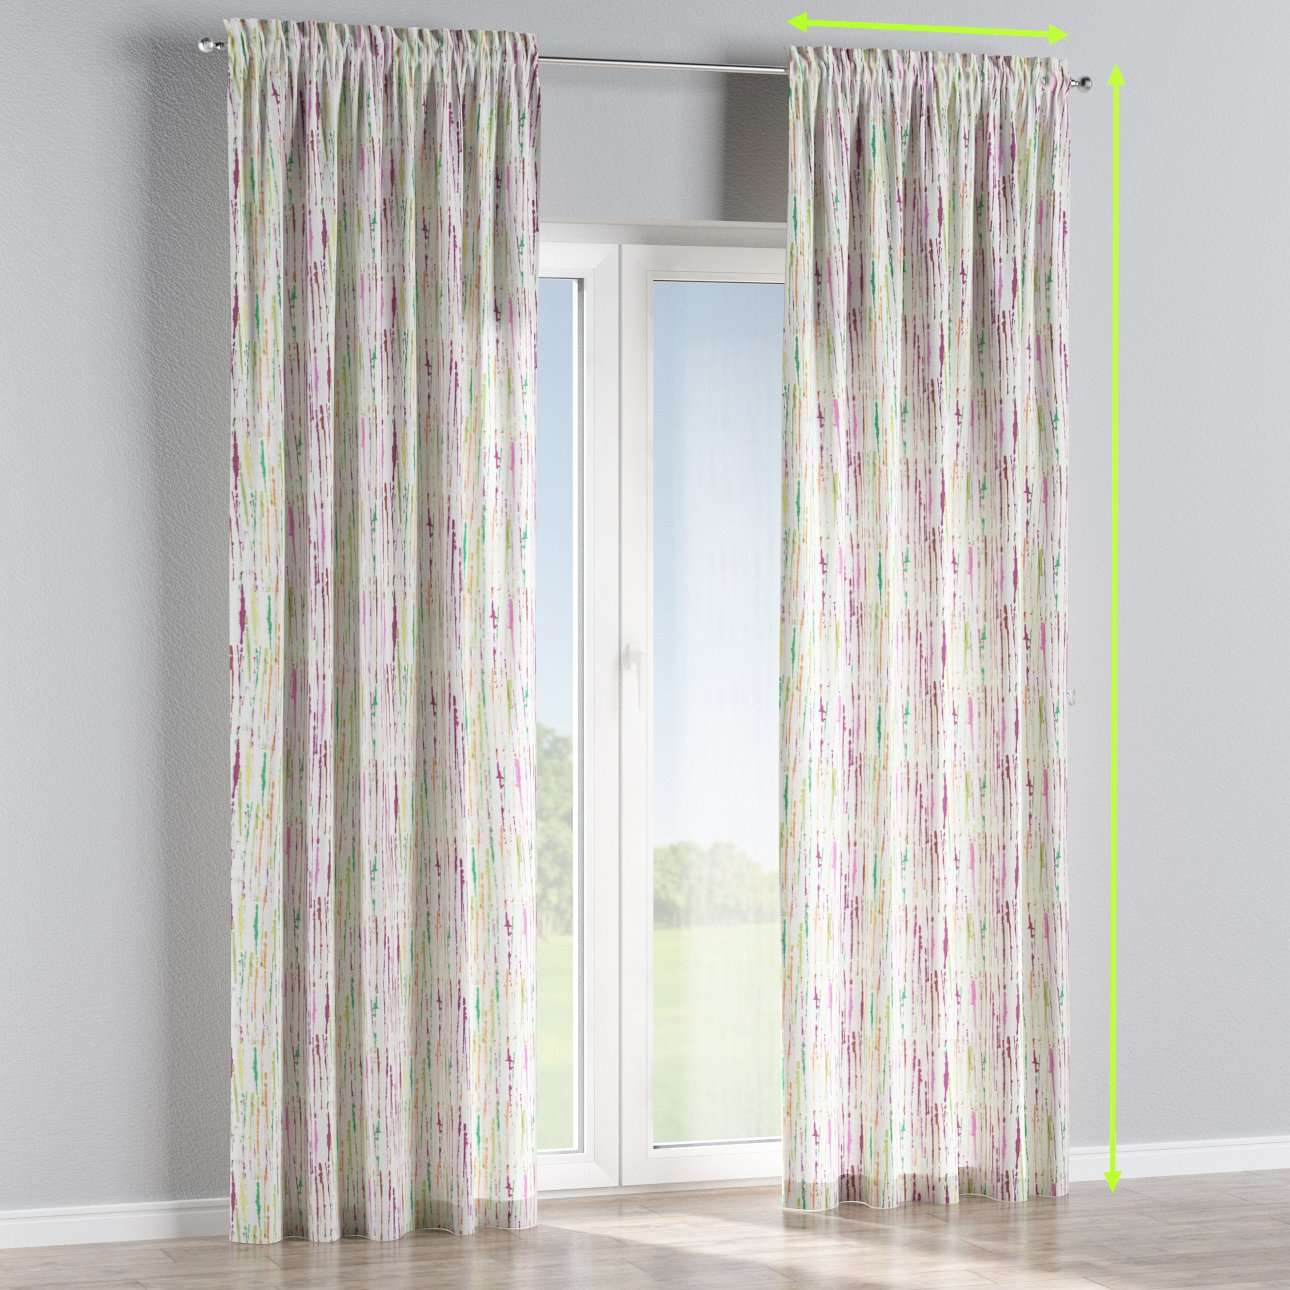 Slot and frill lined curtains in collection Aquarelle, fabric: 140-72